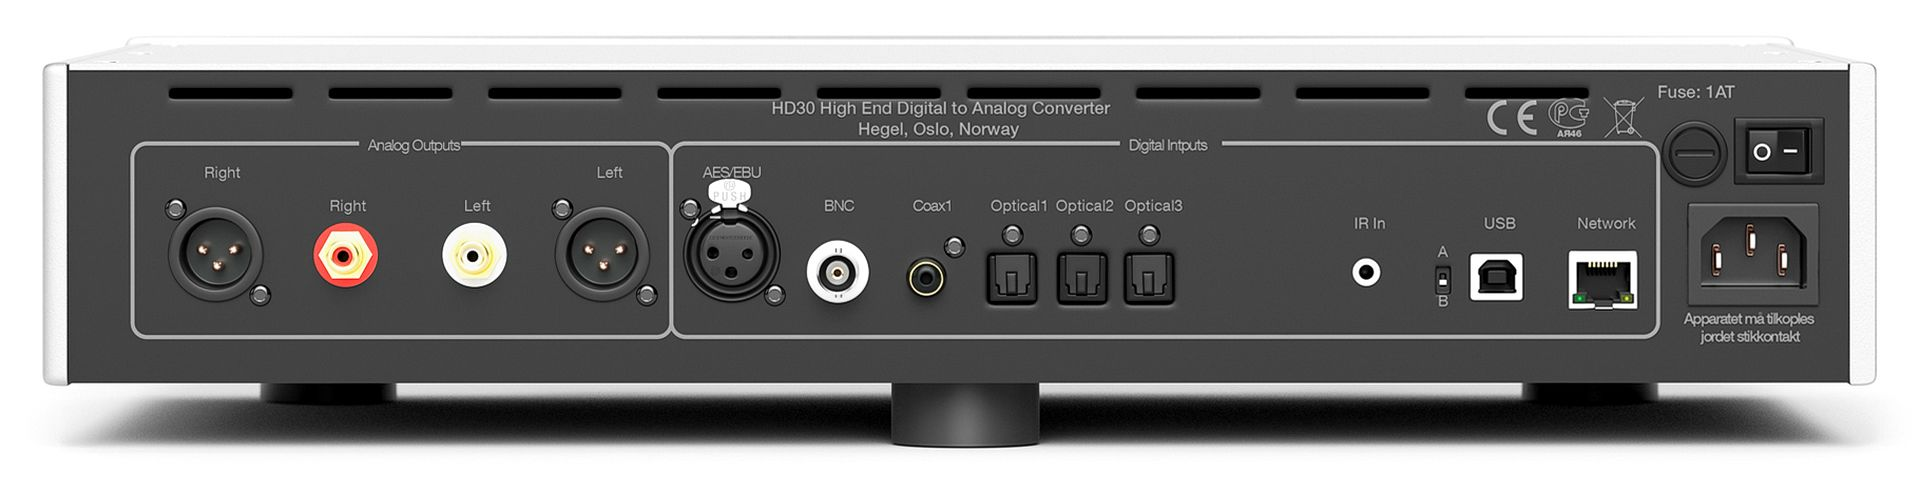 DAC Hegel HD30 sau